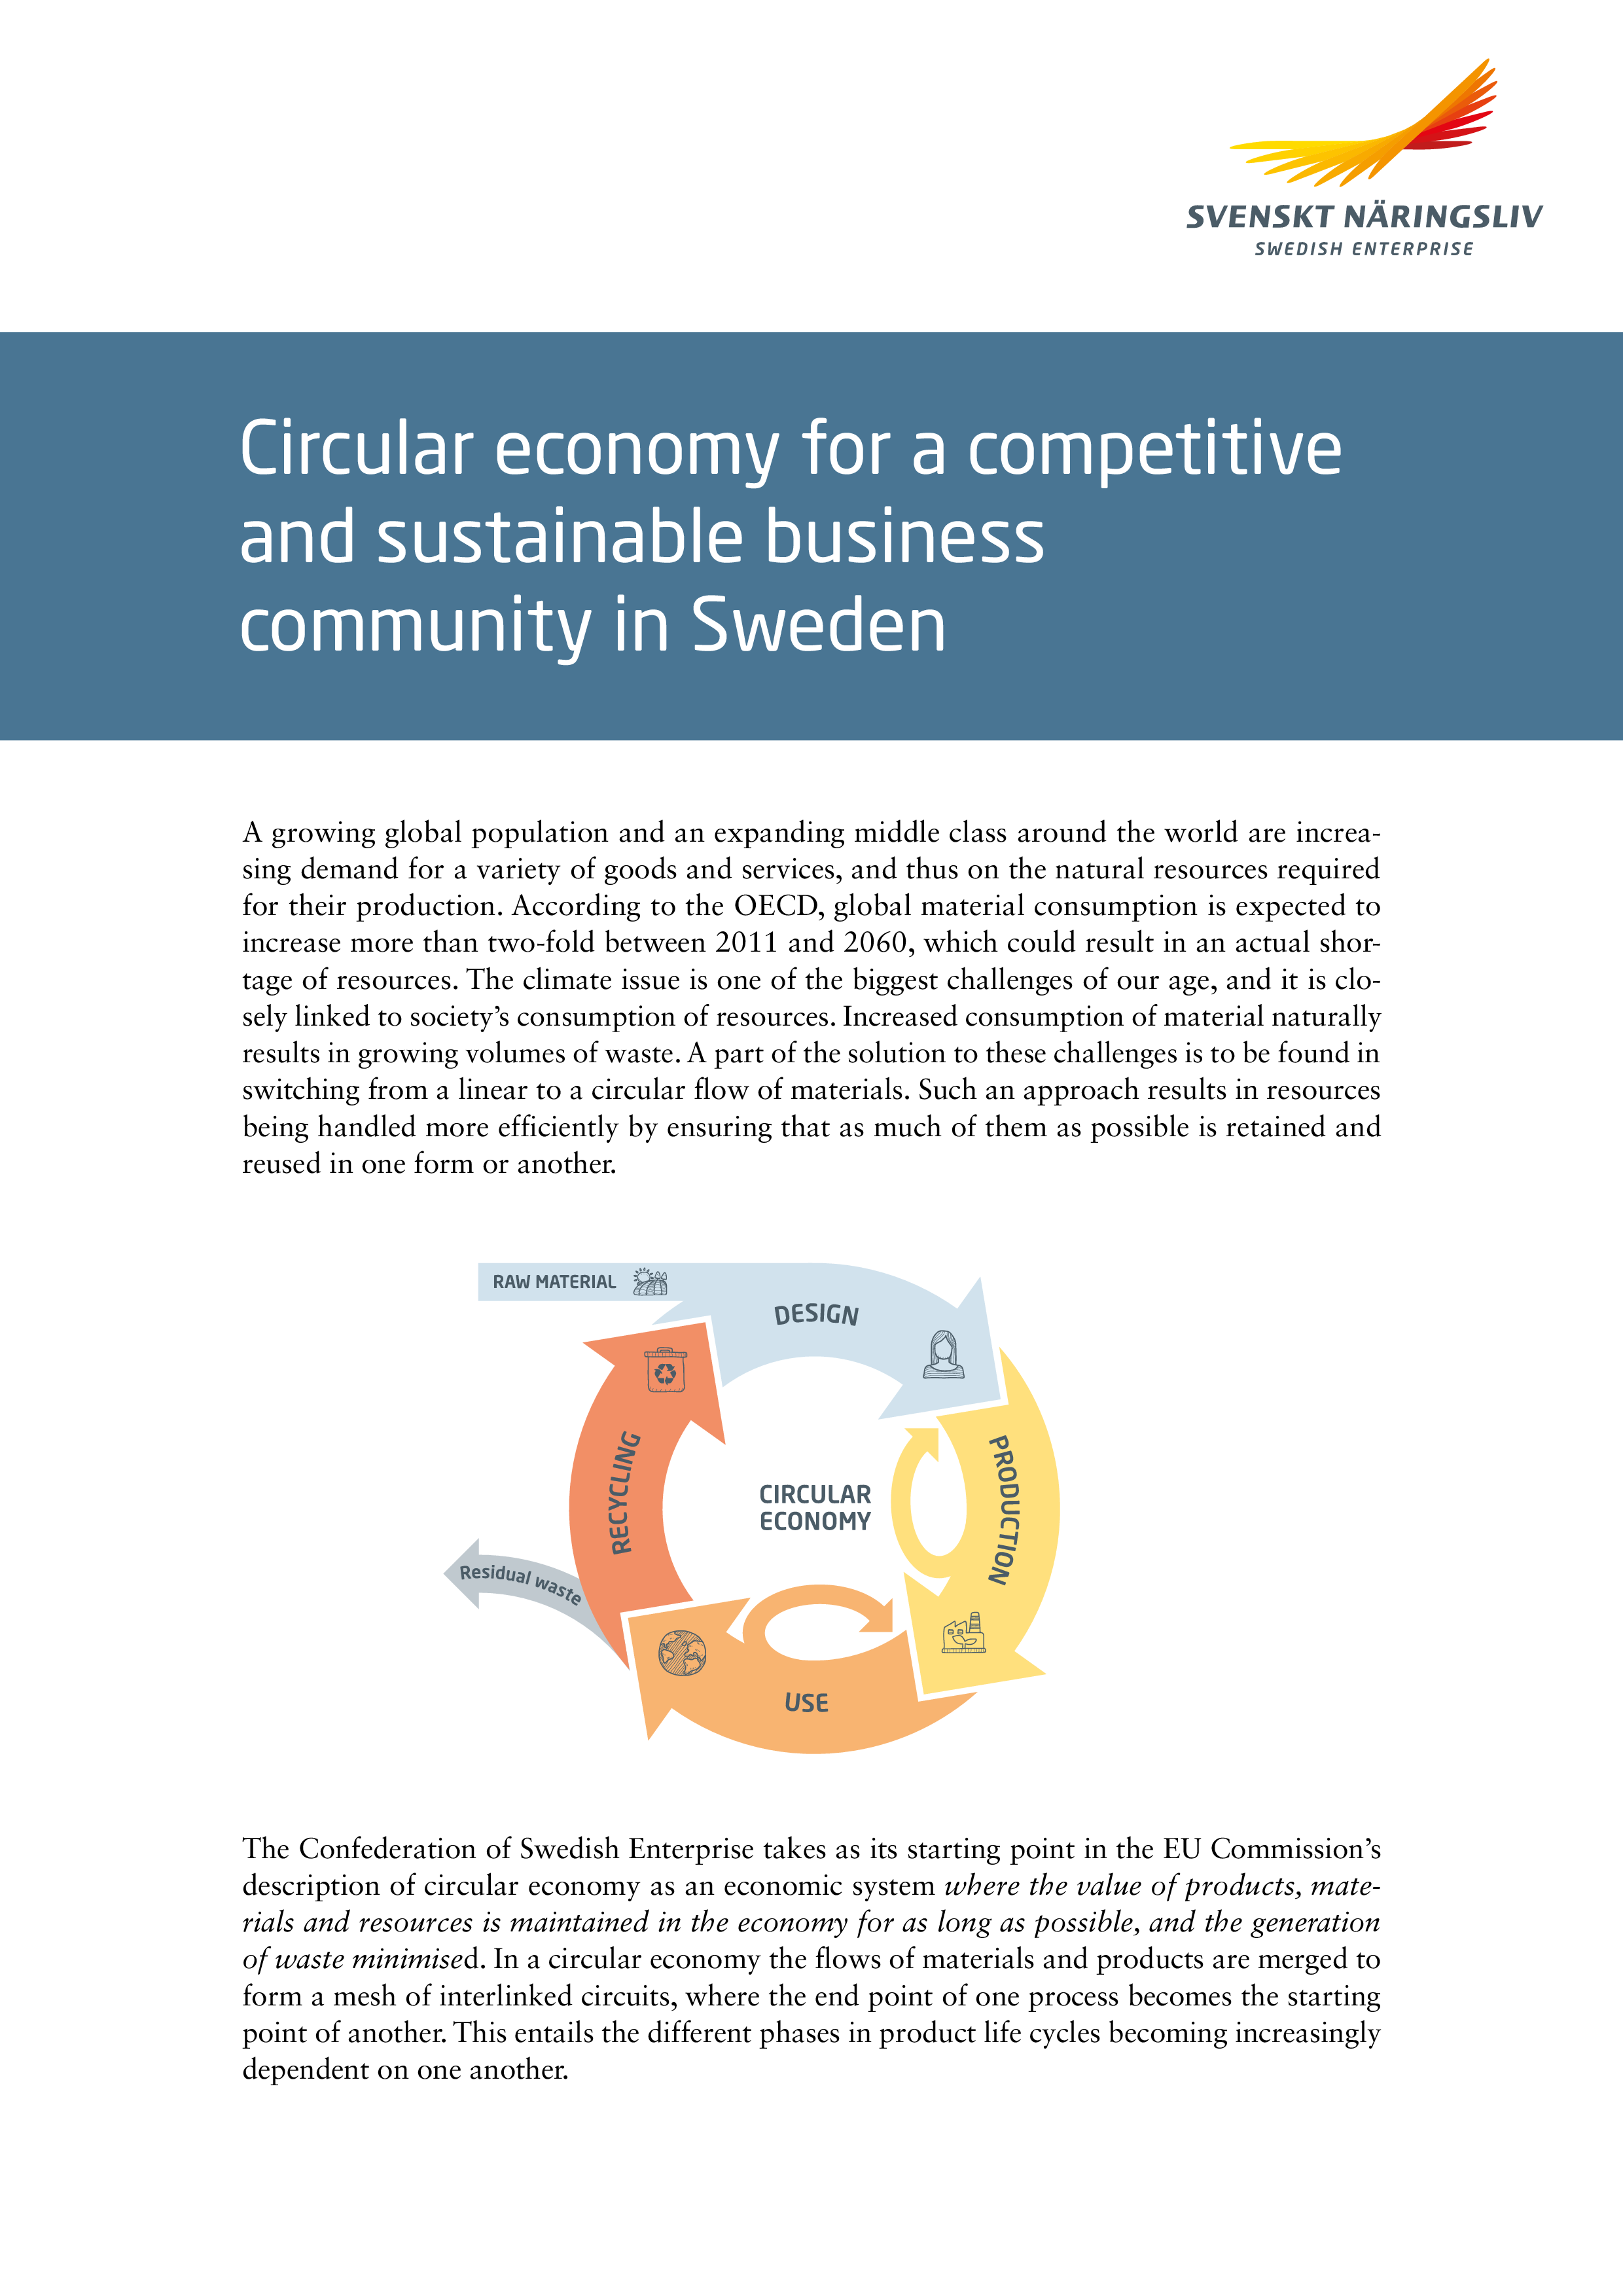 Circular economy for a competitive and sustainable business sector in Sweden - short version